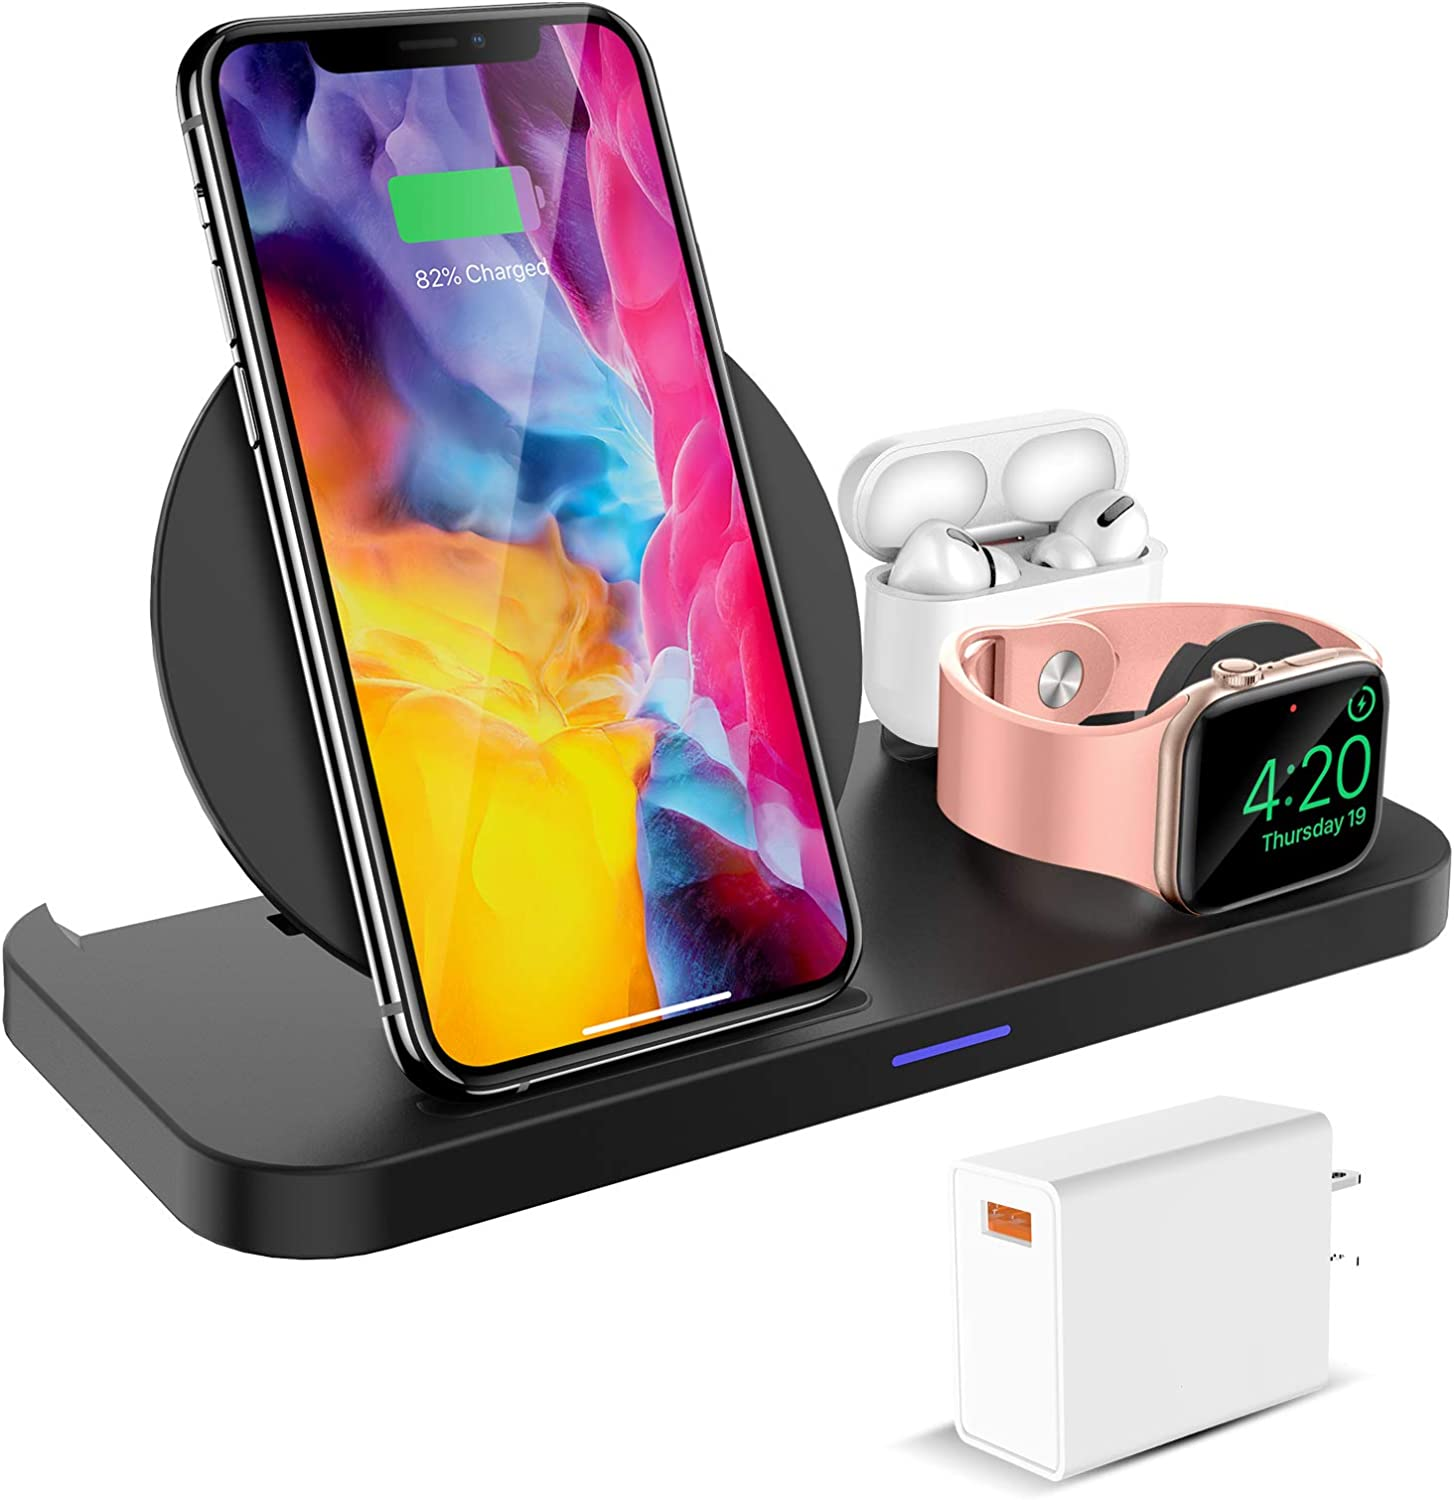 KKM Wireless Charger, 3 in 1 Wireless Charging Station, 10W Qi-Certified charging stand for iPhone 12/12 Pro/12 Pro Max/12 Mini/11 Pro Max/XS/8, Apple Watch, AirPods Pro(White QC 3.0 Adapter Included)